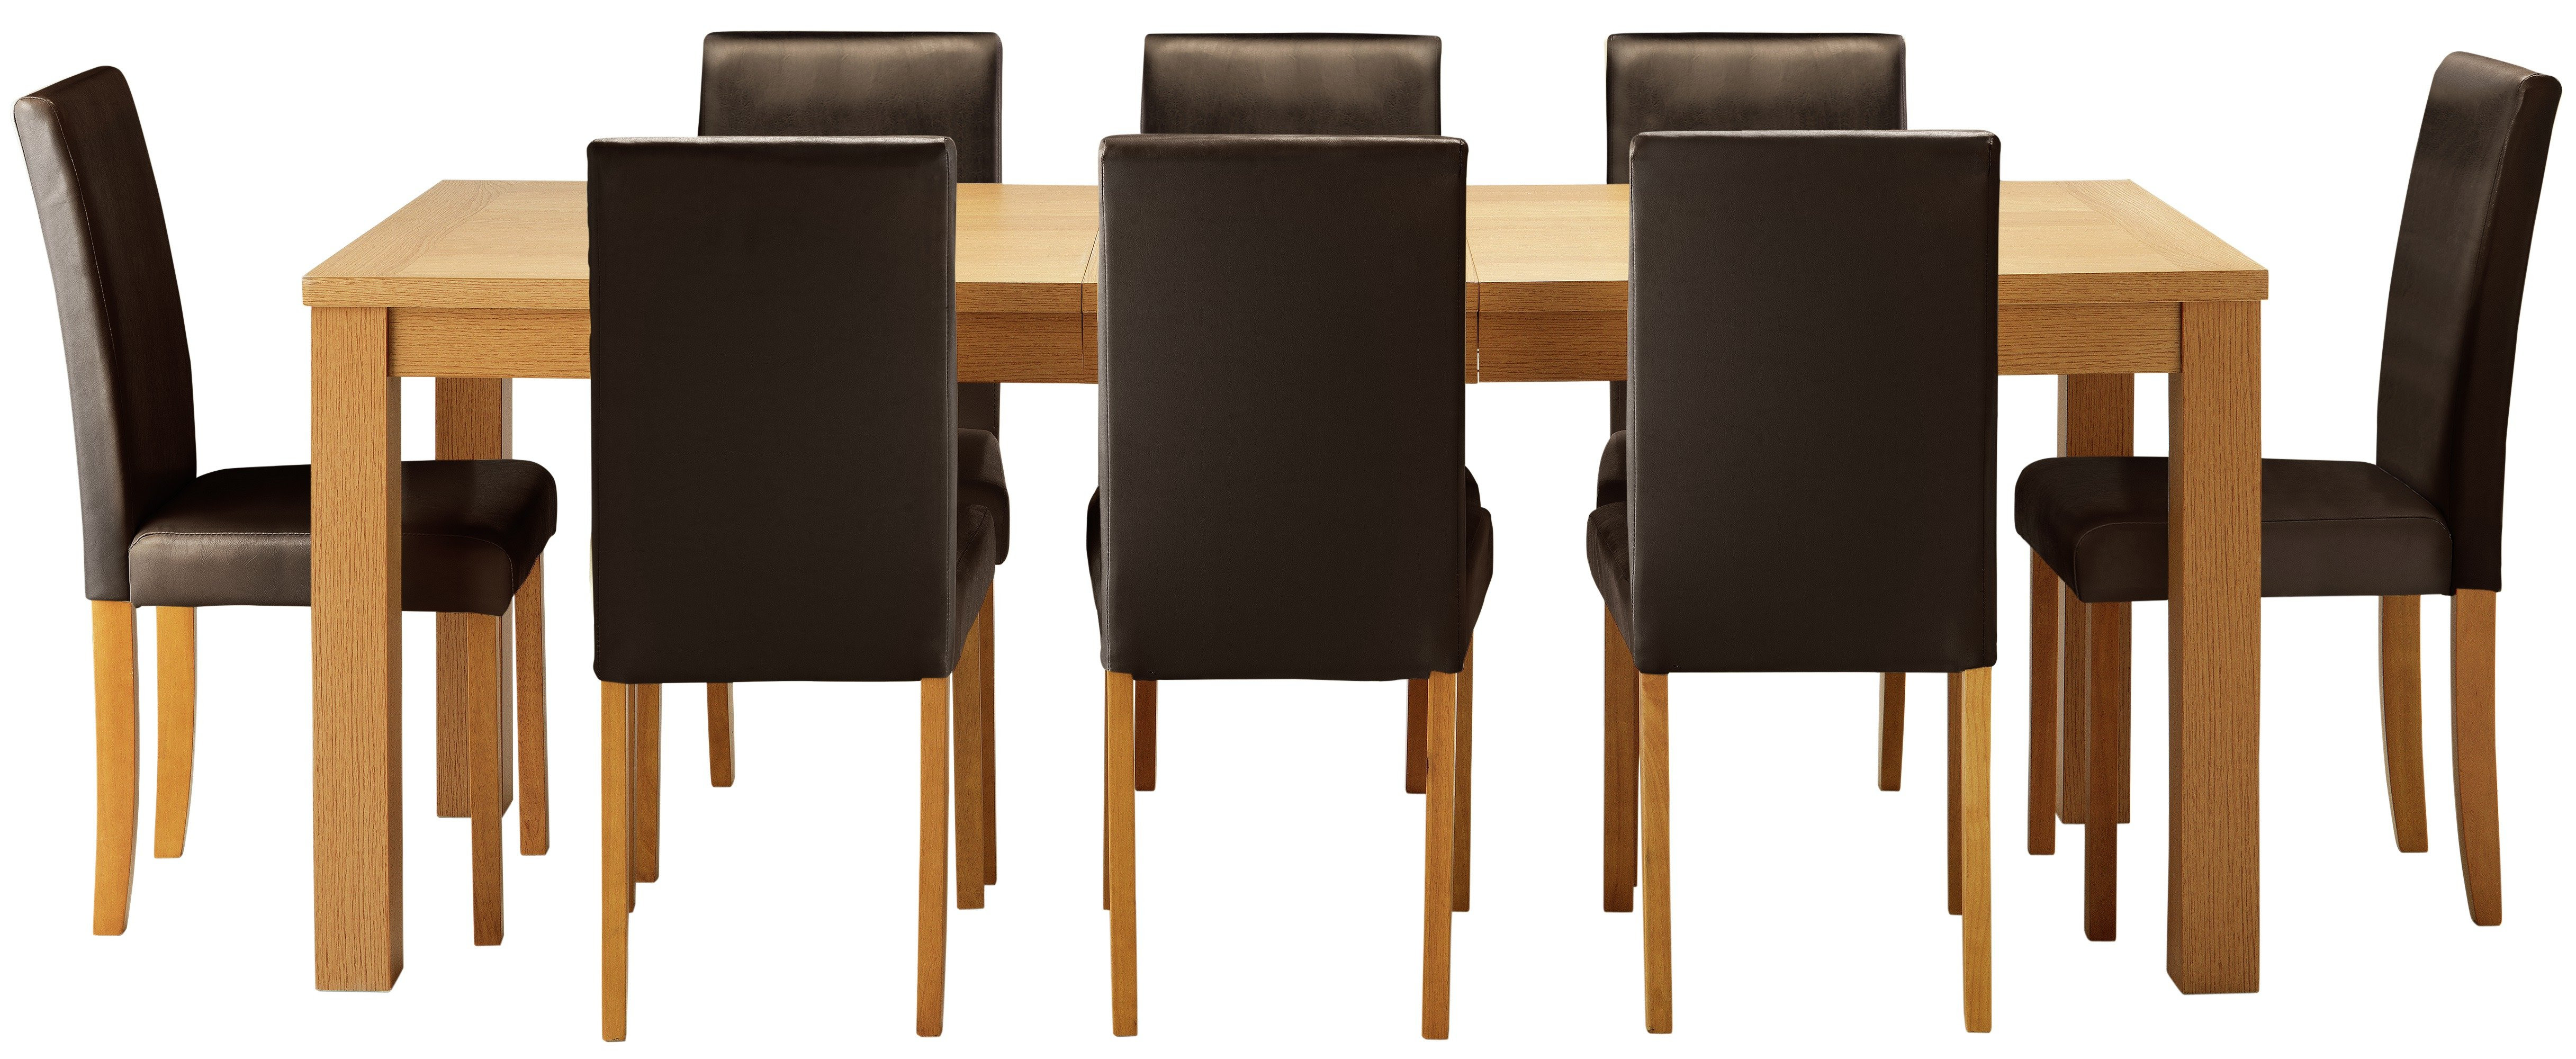 Buy HOME Hemsley Extendable Dining Table  8 Chairs  Chocolate at Argos.co.uk  Your Online